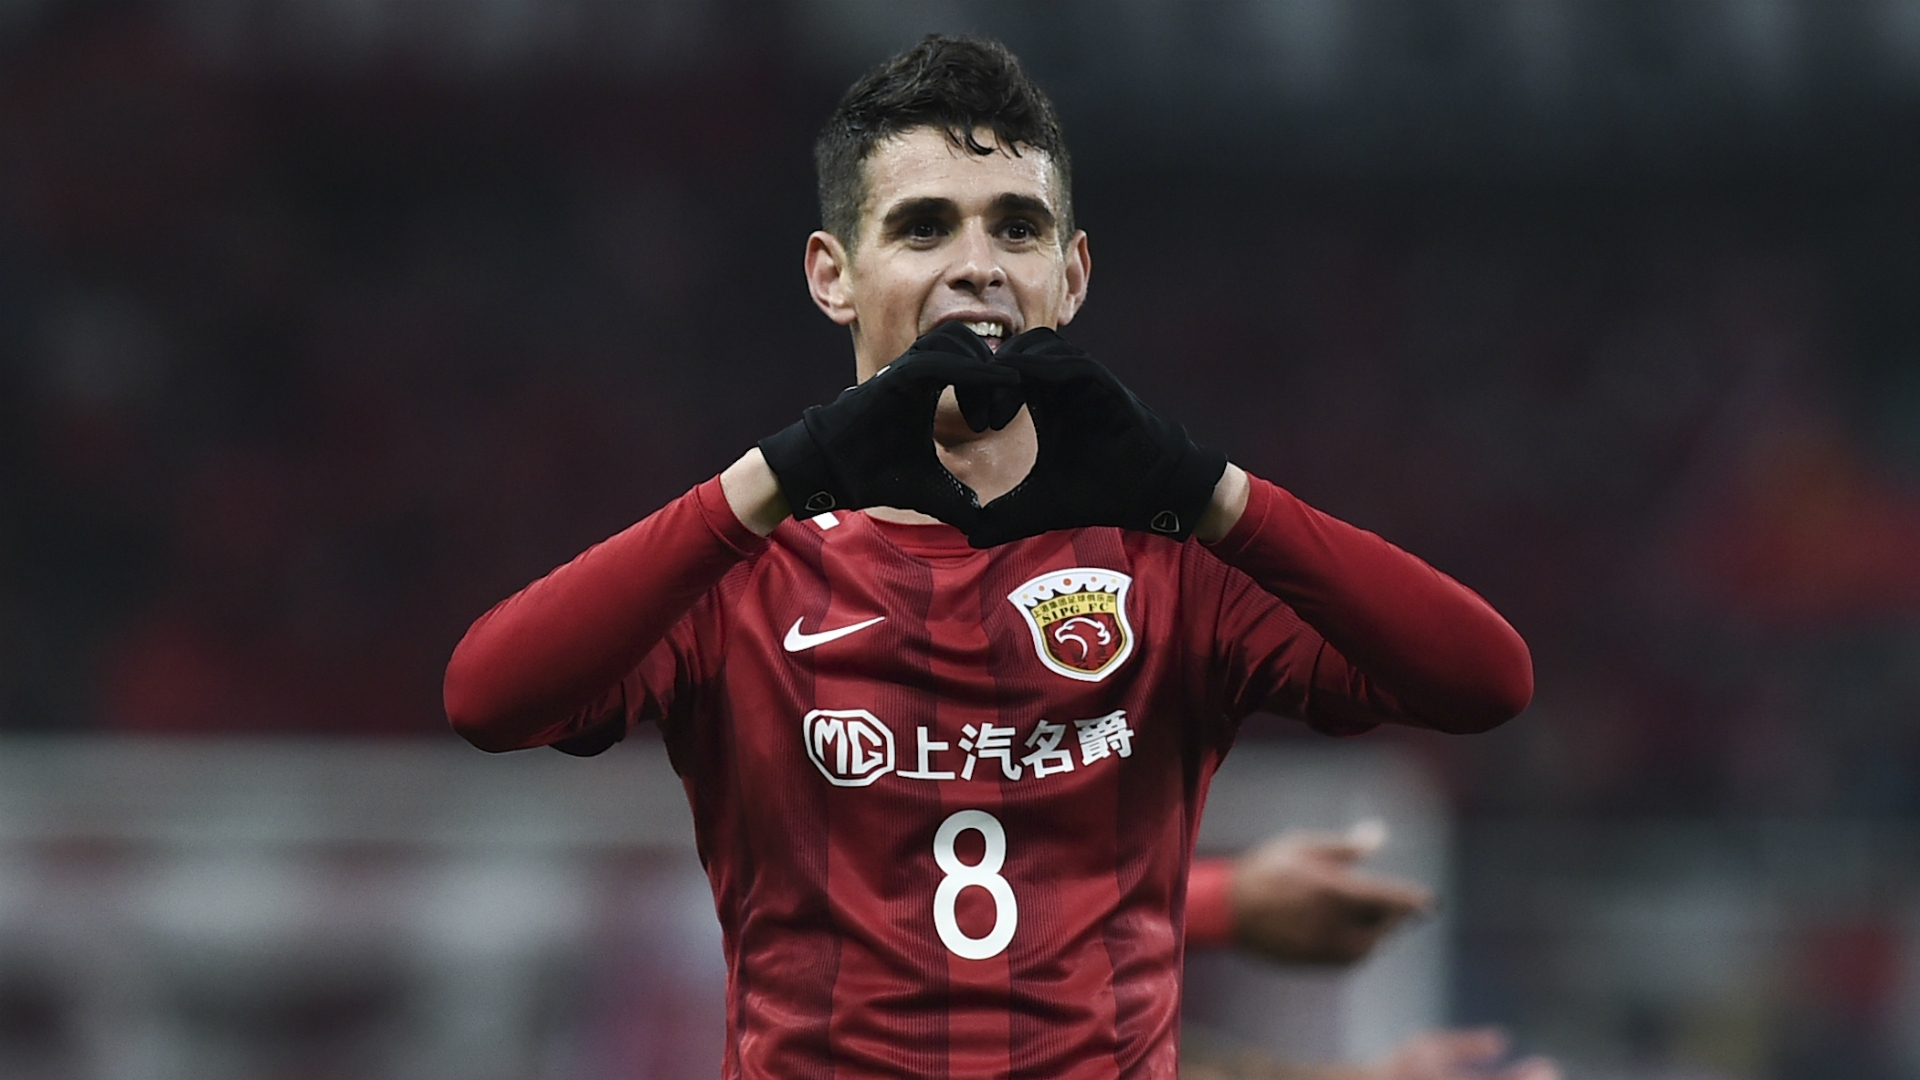 It looks set that Oscar will indeed have to wait out his eight-match ban. In the not too distant past, the 25-year-old Brazilian shone at Chelsea, earning himself comparisons to compatriot Kaka